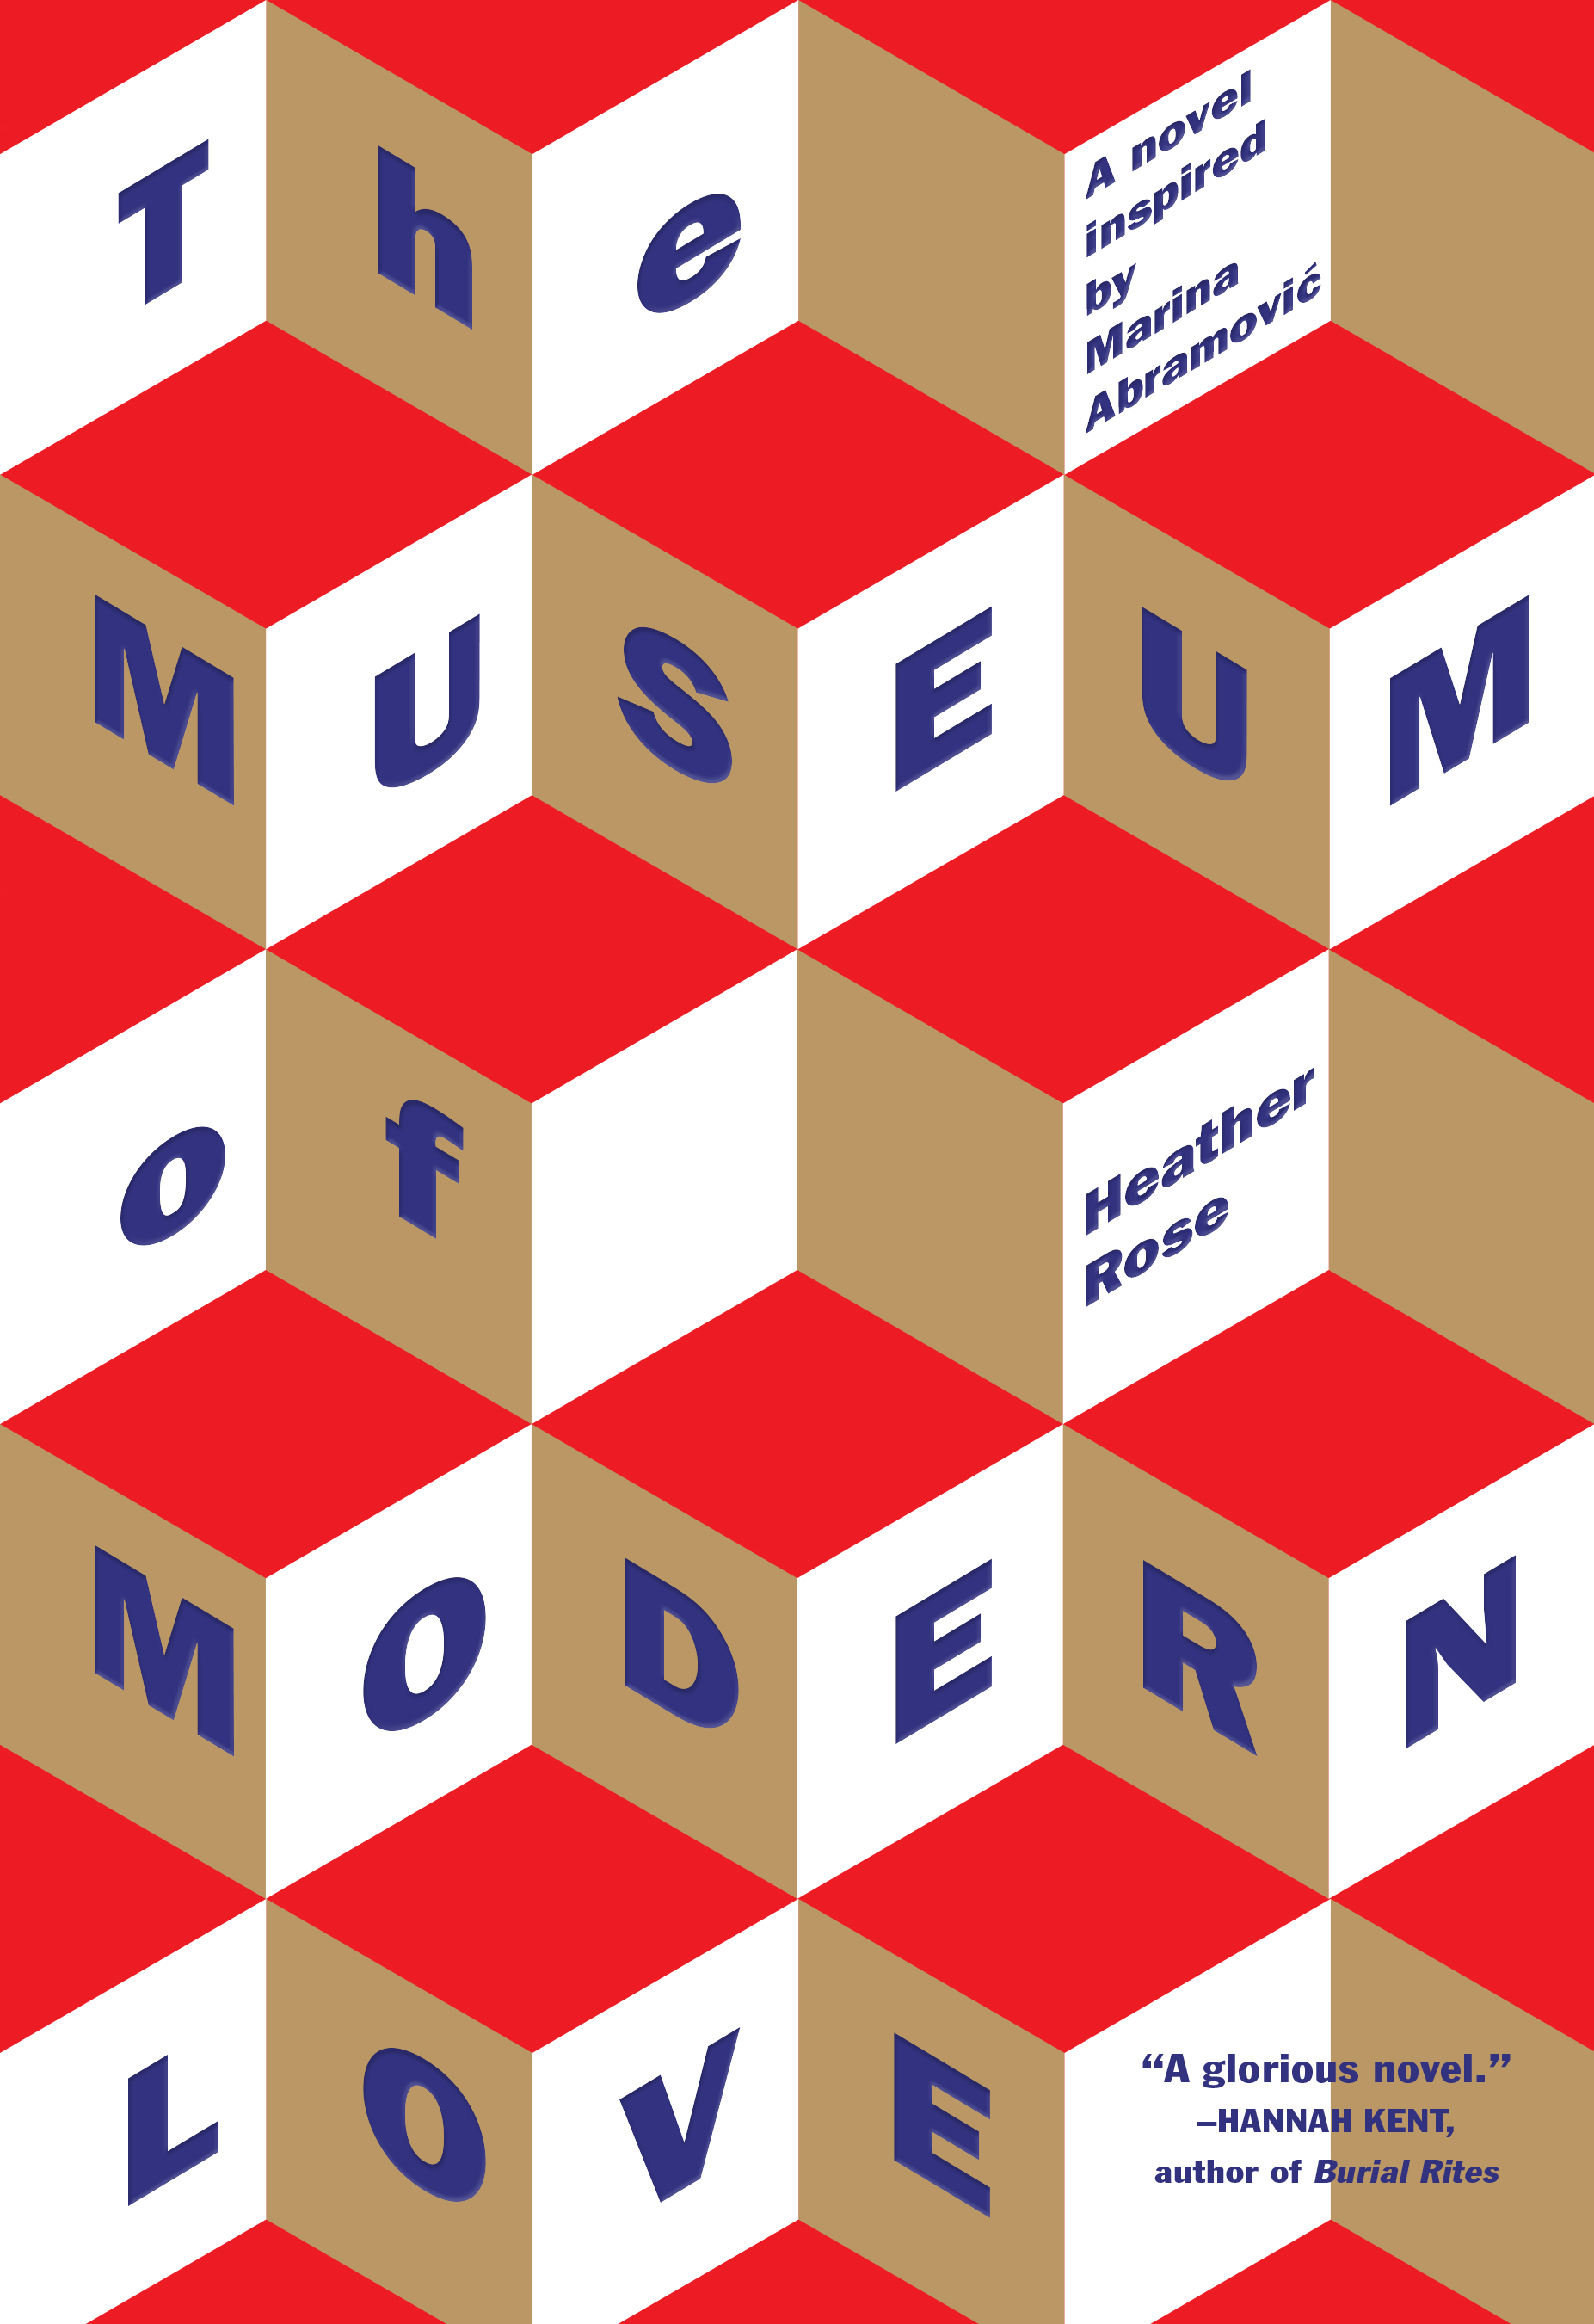 The cover of the book The Museum of Modern Love